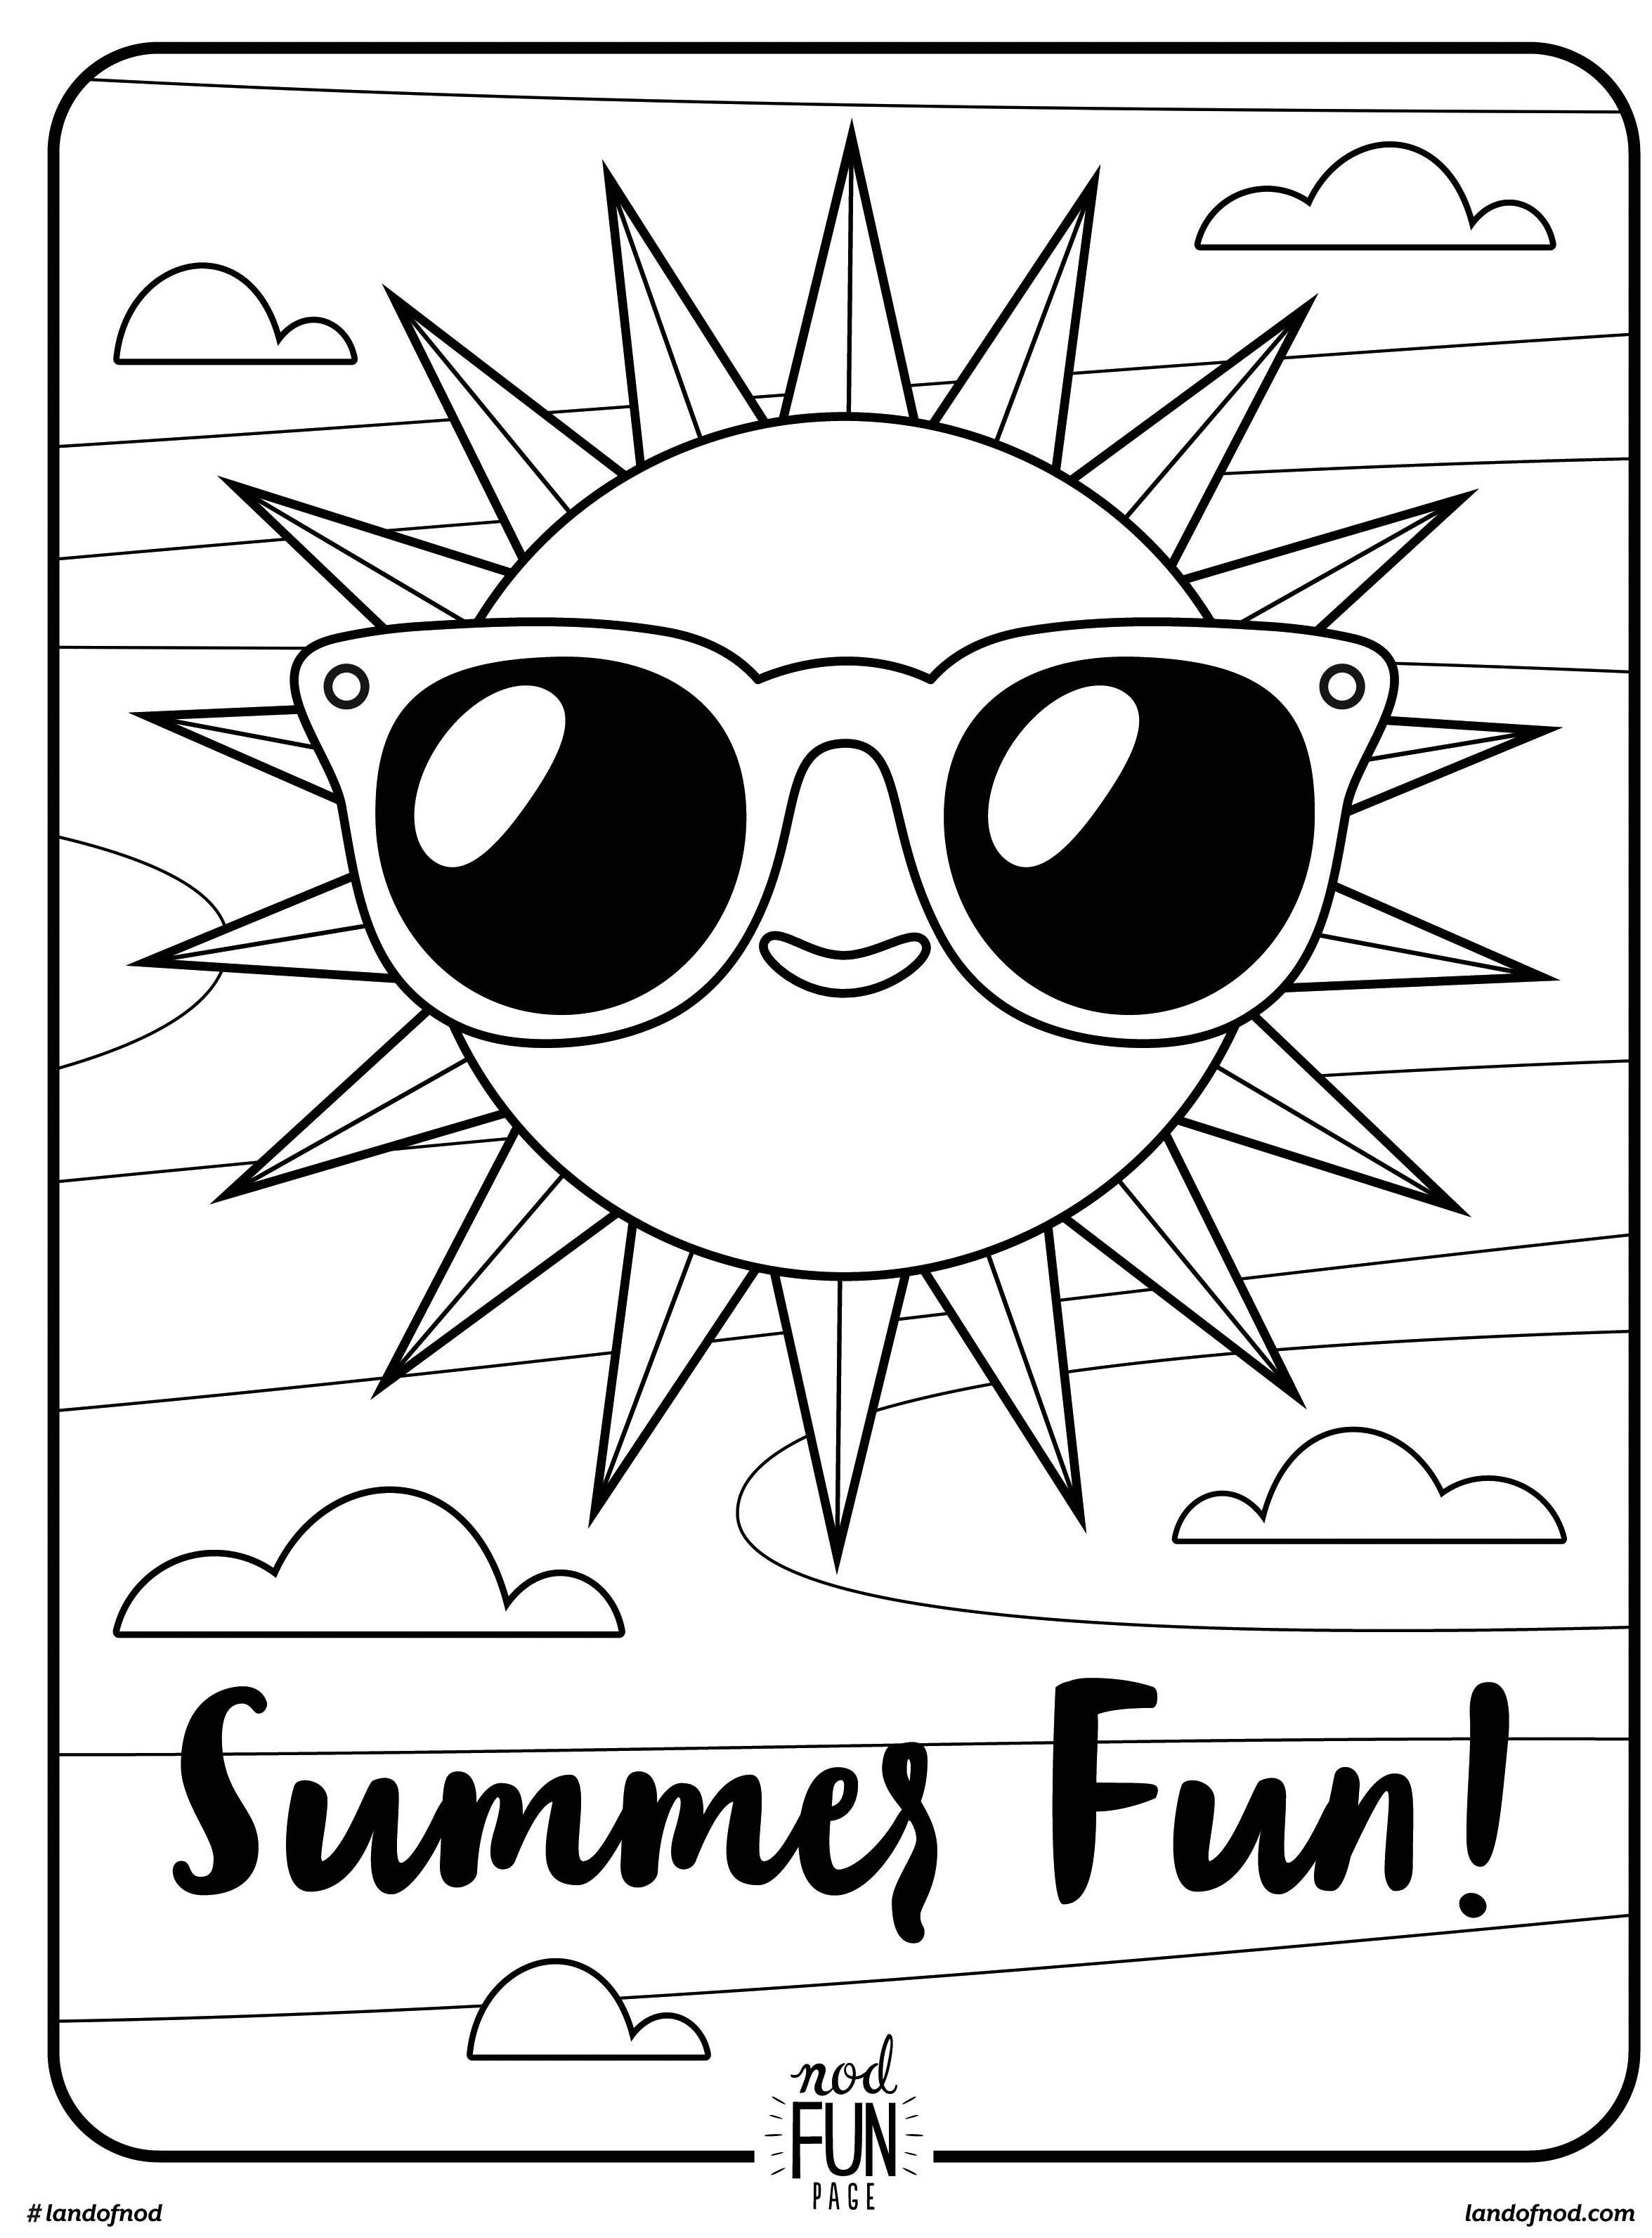 fun coloring pages - free printable coloring page summer fun